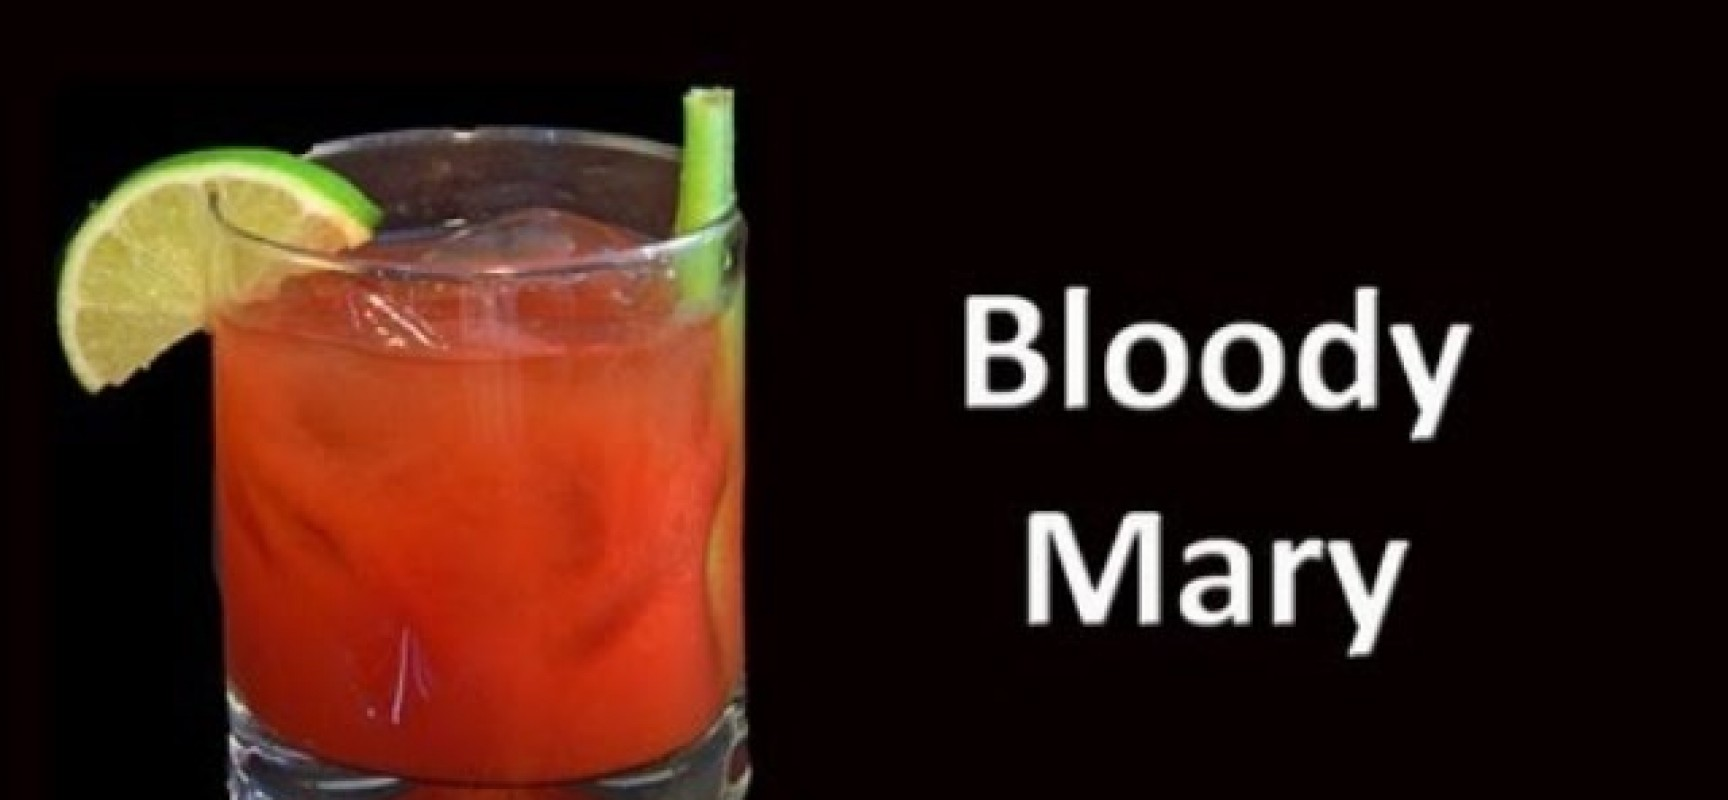 Bloody mary one of the most popular cocktails crave bits for Good alcoholic mixed drinks